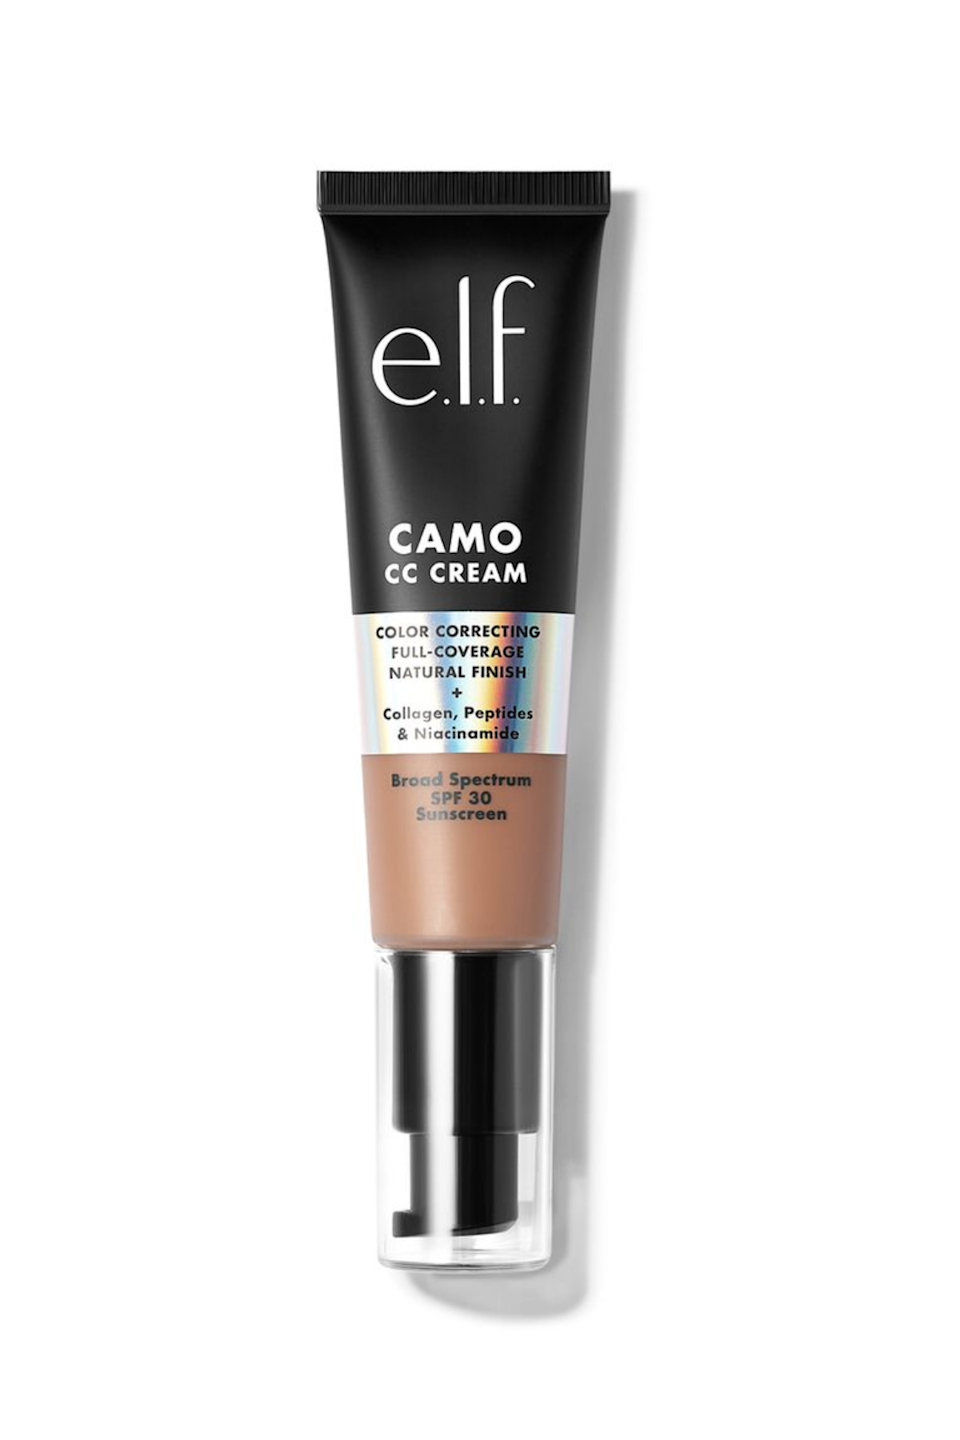 """<p><strong>e.l.f. Cosmetics</strong></p><p>ulta.com</p><p><strong>$14.00</strong></p><p><a href=""""https://go.redirectingat.com?id=74968X1596630&url=https%3A%2F%2Fwww.ulta.com%2Fp%2Fcamo-cc-cream-pimprod2020783&sref=https%3A%2F%2Fwww.seventeen.com%2Fbeauty%2Fmakeup-skincare%2Fg36866431%2Fbest-elf-makeup-skincare-products%2F"""" rel=""""nofollow noopener"""" target=""""_blank"""" data-ylk=""""slk:Shop Now"""" class=""""link rapid-noclick-resp"""">Shop Now</a></p><p>I'll just start by saying that E.L.F.'s Camo CC Cream is a game-changer in any beauty routine. This CC Cream is not only medium to full coverage, but it has SPF 30 to protect from sun damage. It also has ingredients like collagen and niacinamide, which are commonly found in skincare products to help nourish and improve texture.</p>"""